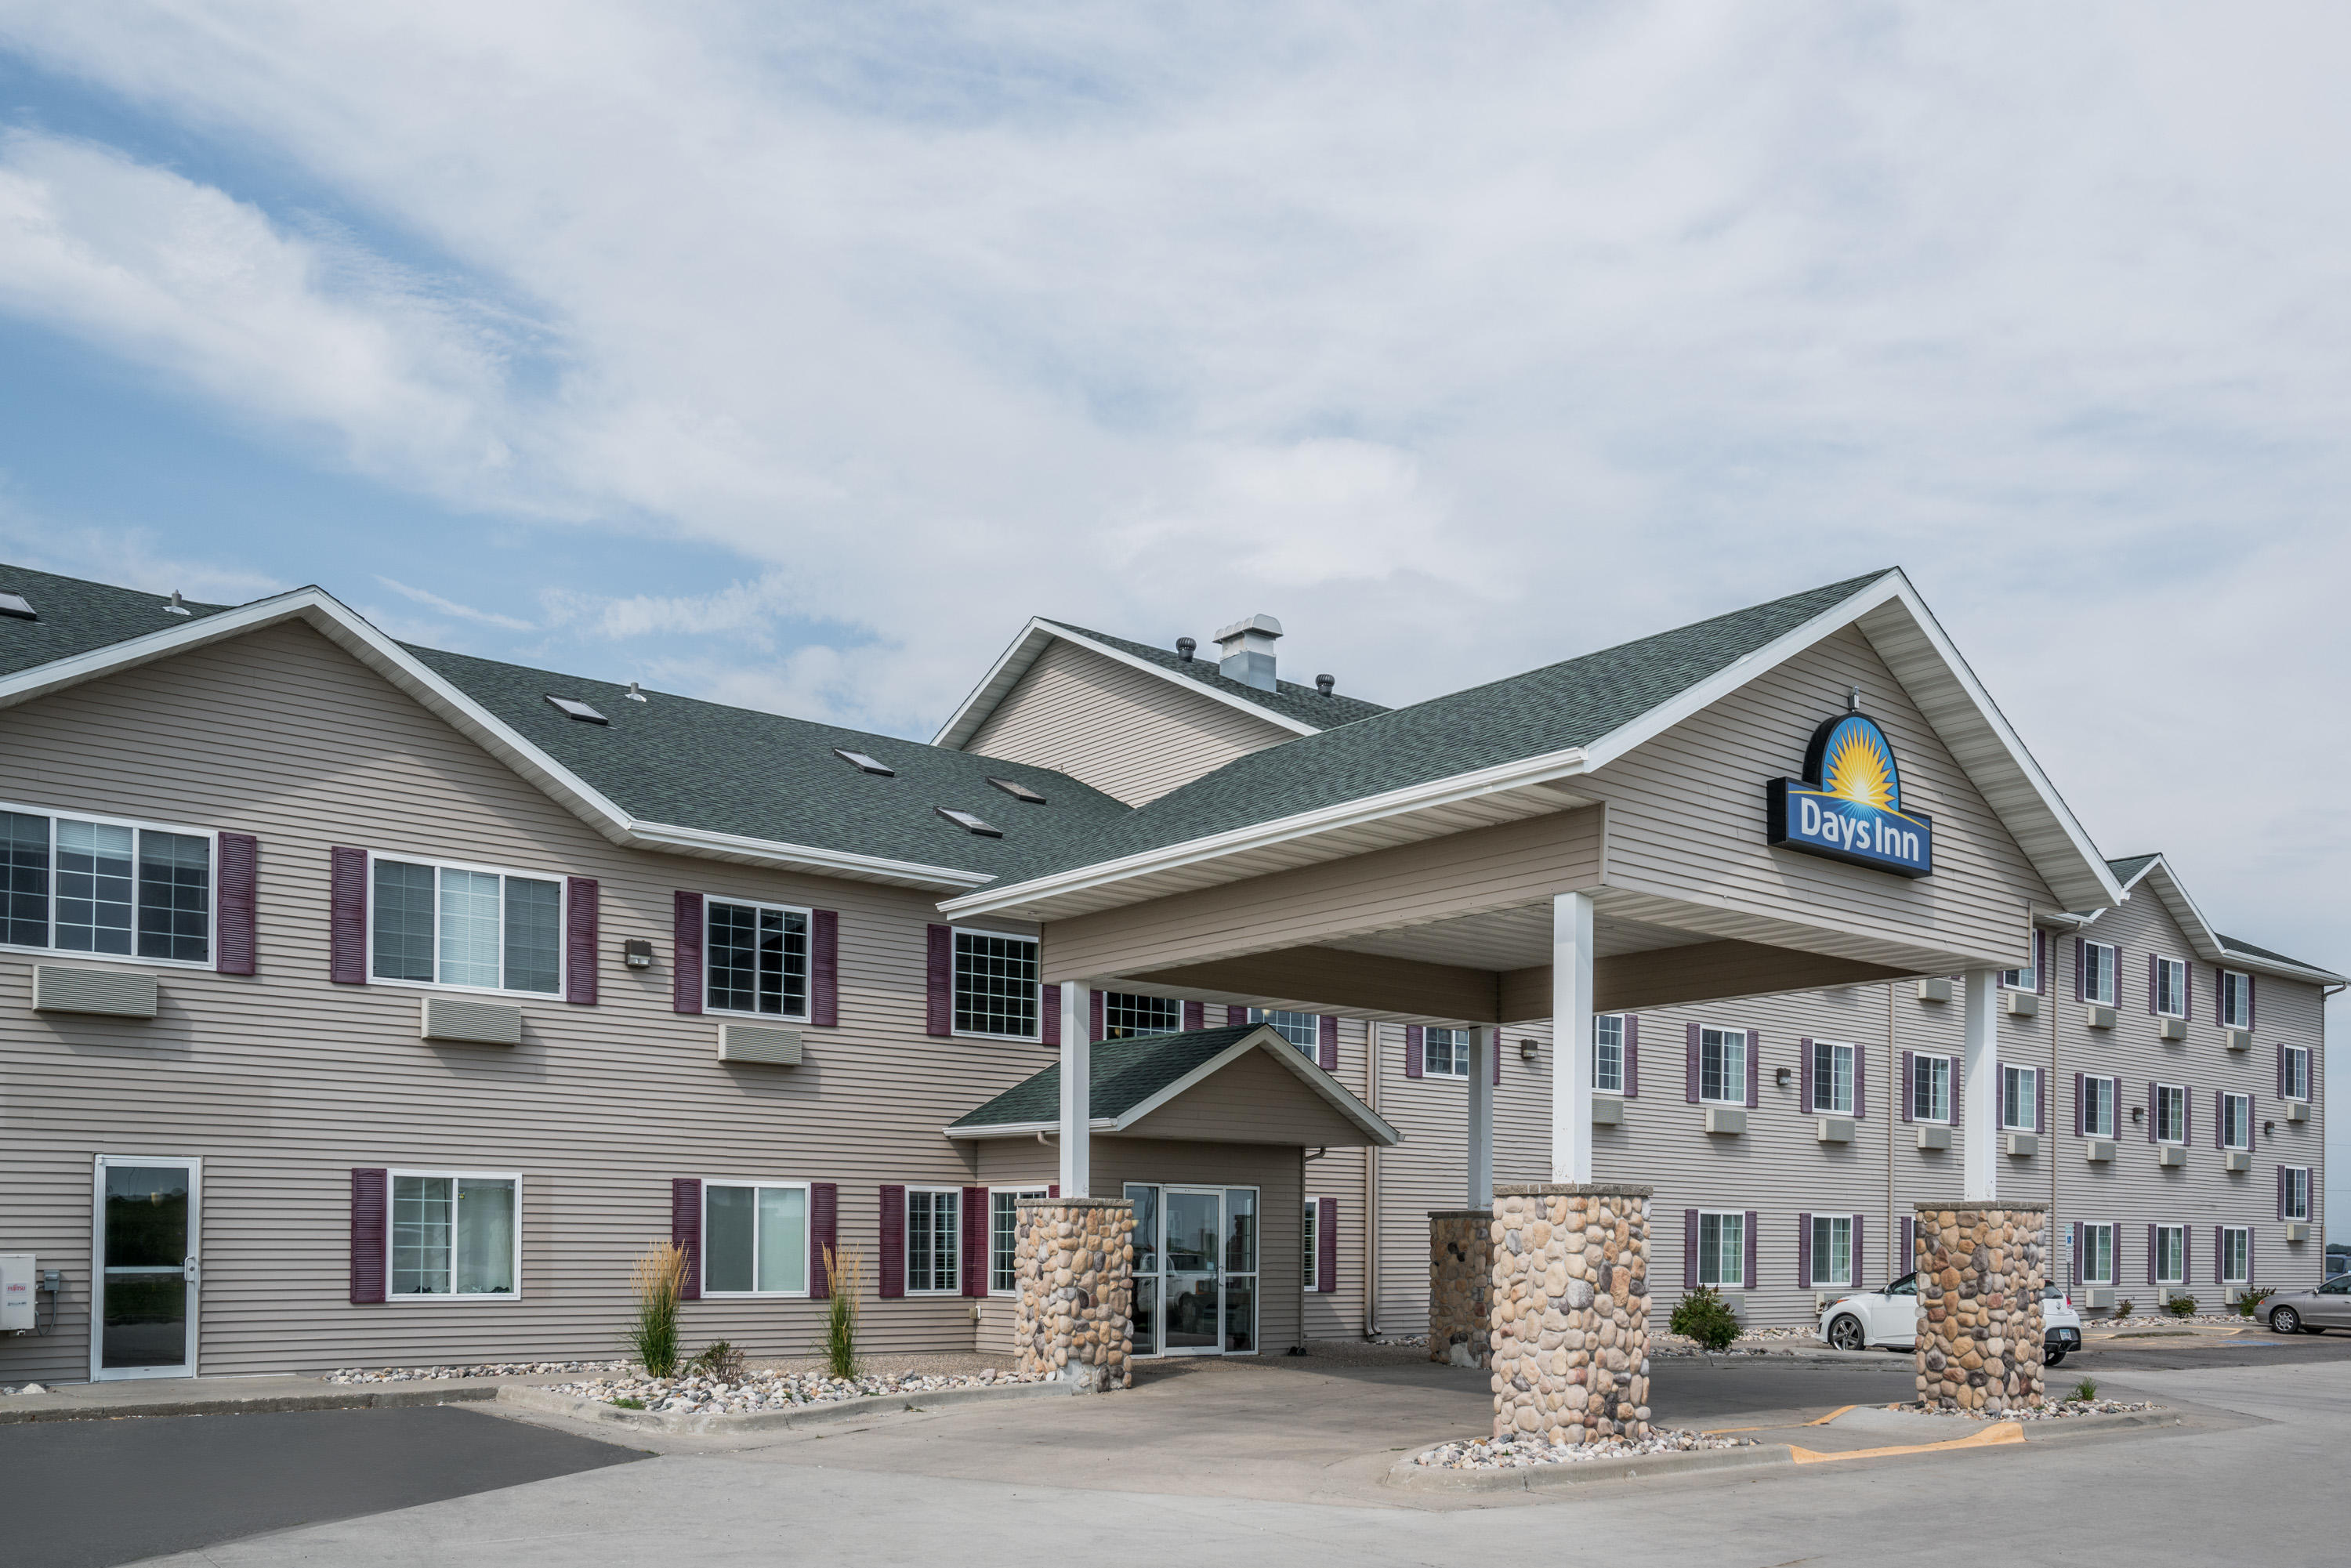 Days Inn Hotel & Governors' Waterpark, RV Park & Fitness Center image 0